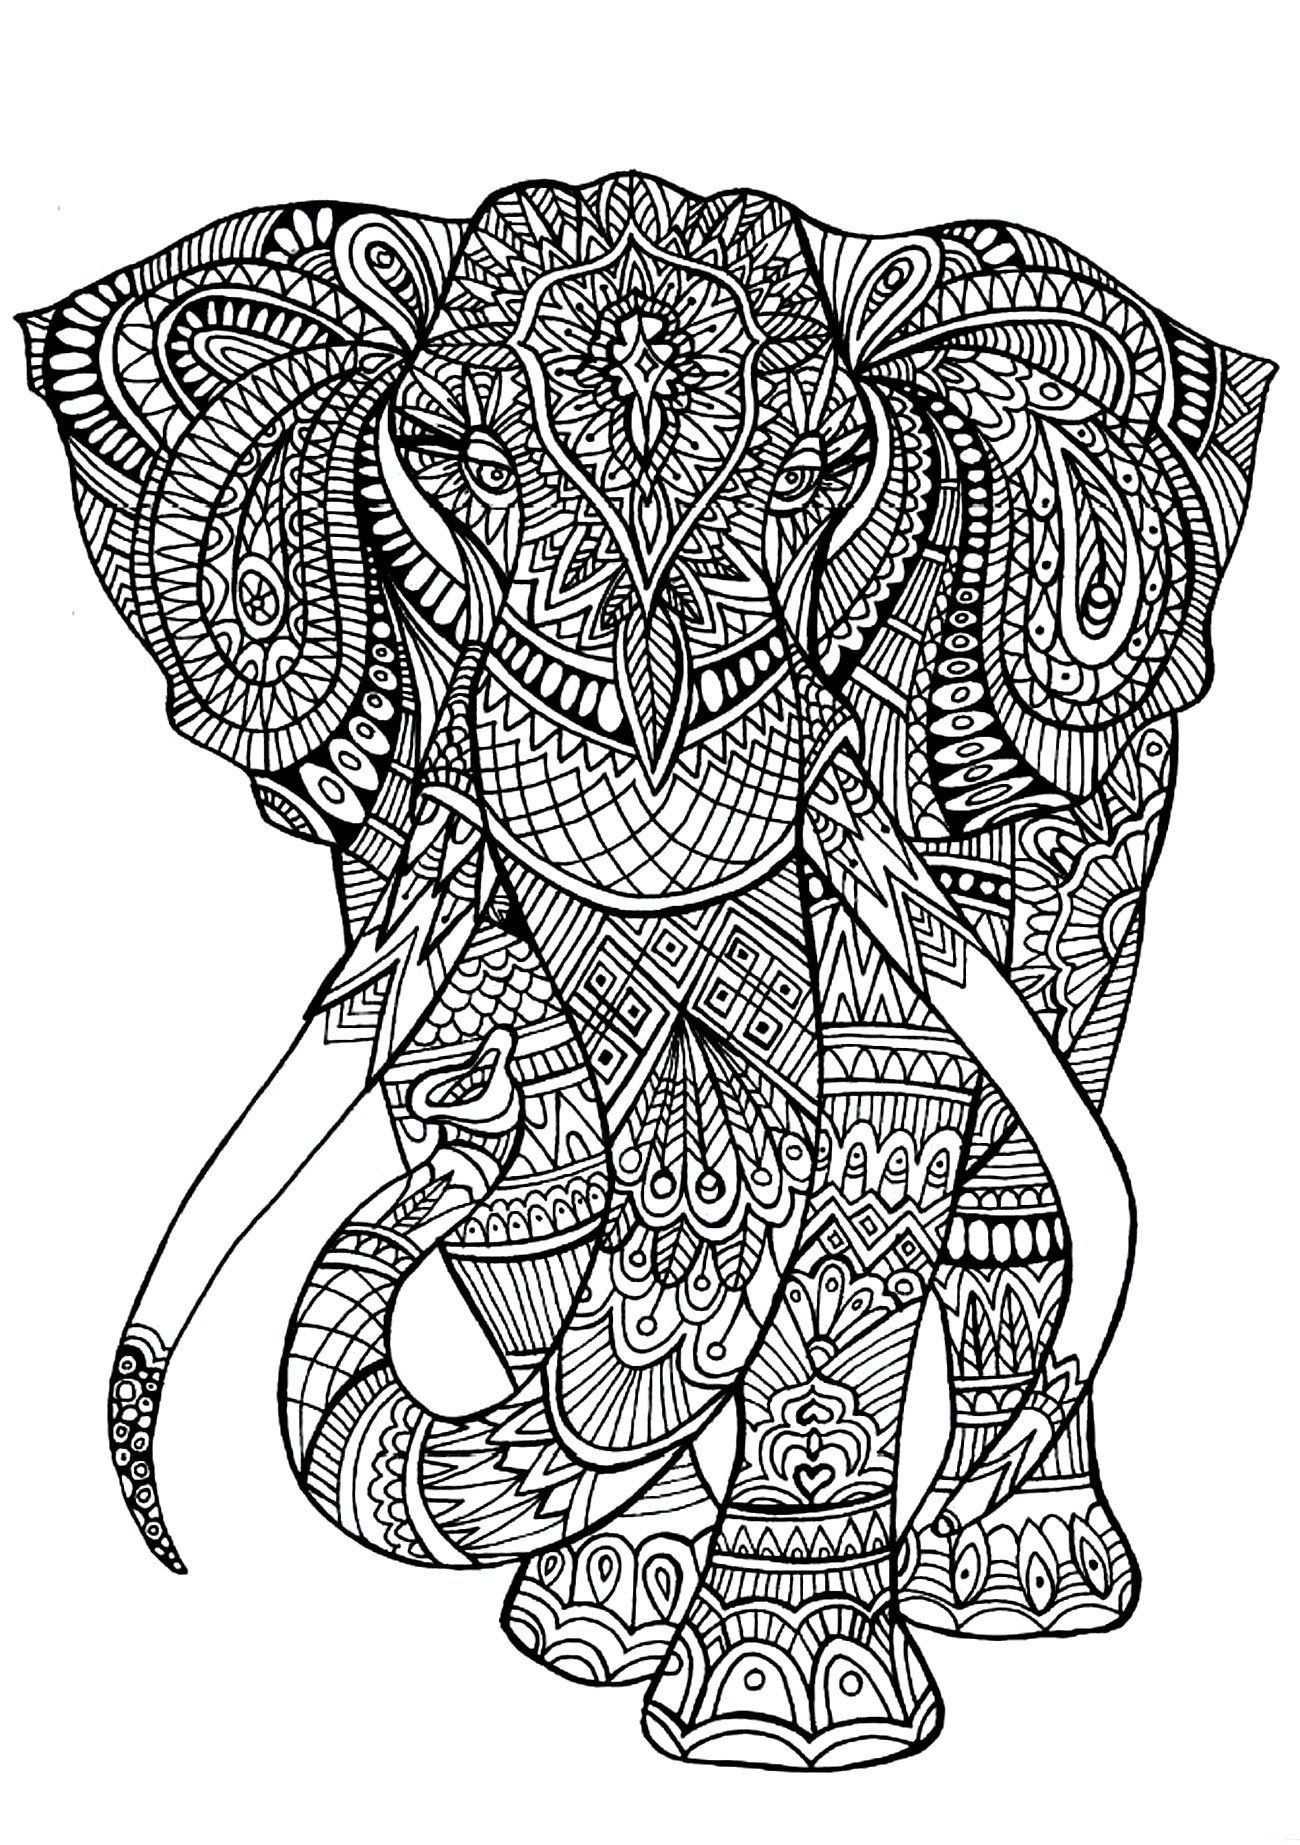 Animal Pattern Coloring Pages Coloring Pages Animal Patterns Elephant Coloring Page Detailed Coloring Pages Cool Coloring Pages